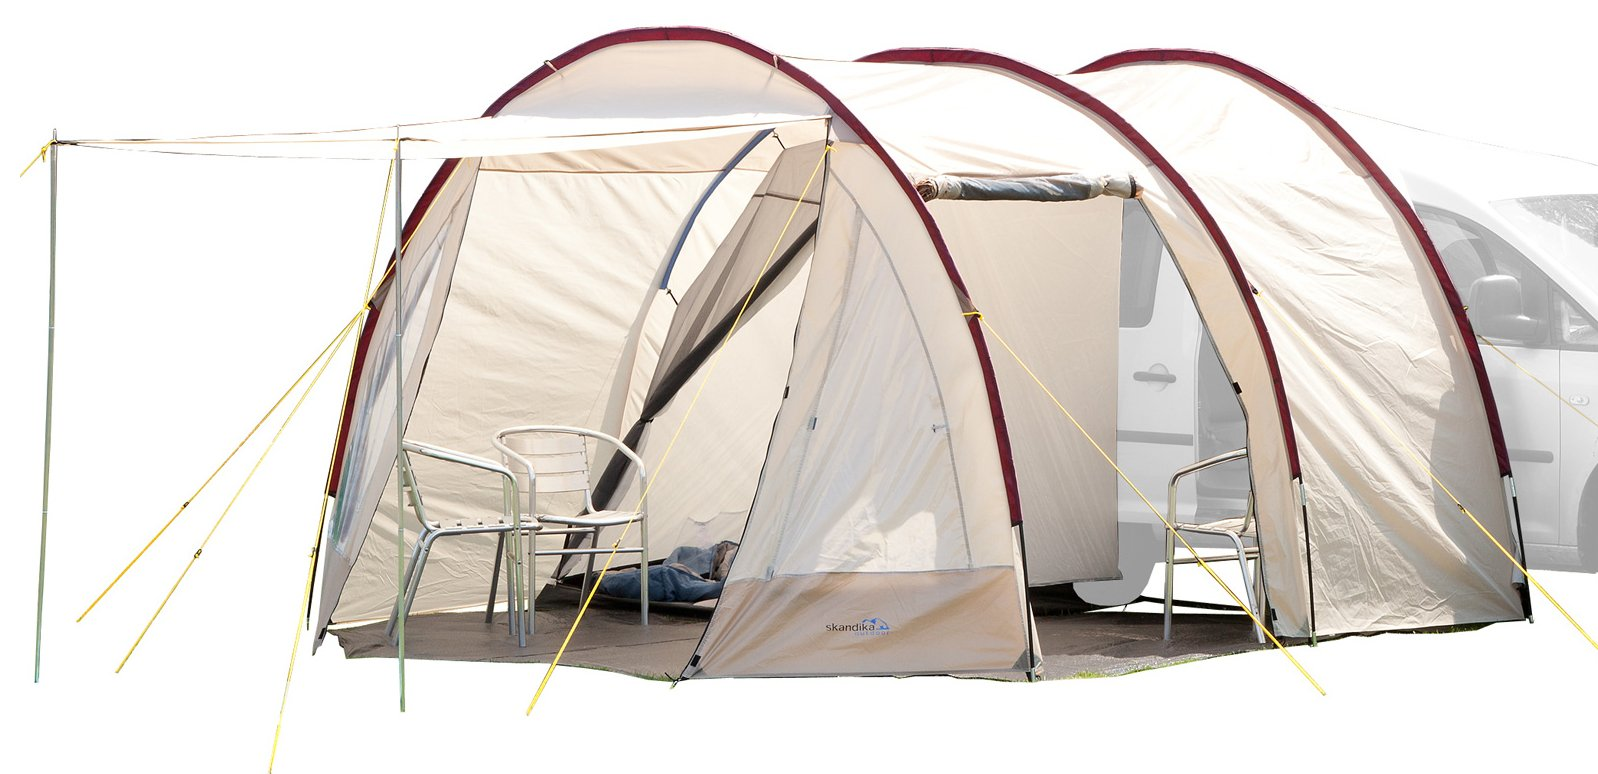 Skandika Camper Tramp Free-Standing Minivan Awning Tent with 2-Berth Sleeping Cabin and 210 cm Peak Height, Sand/Red, 2 Persons 1